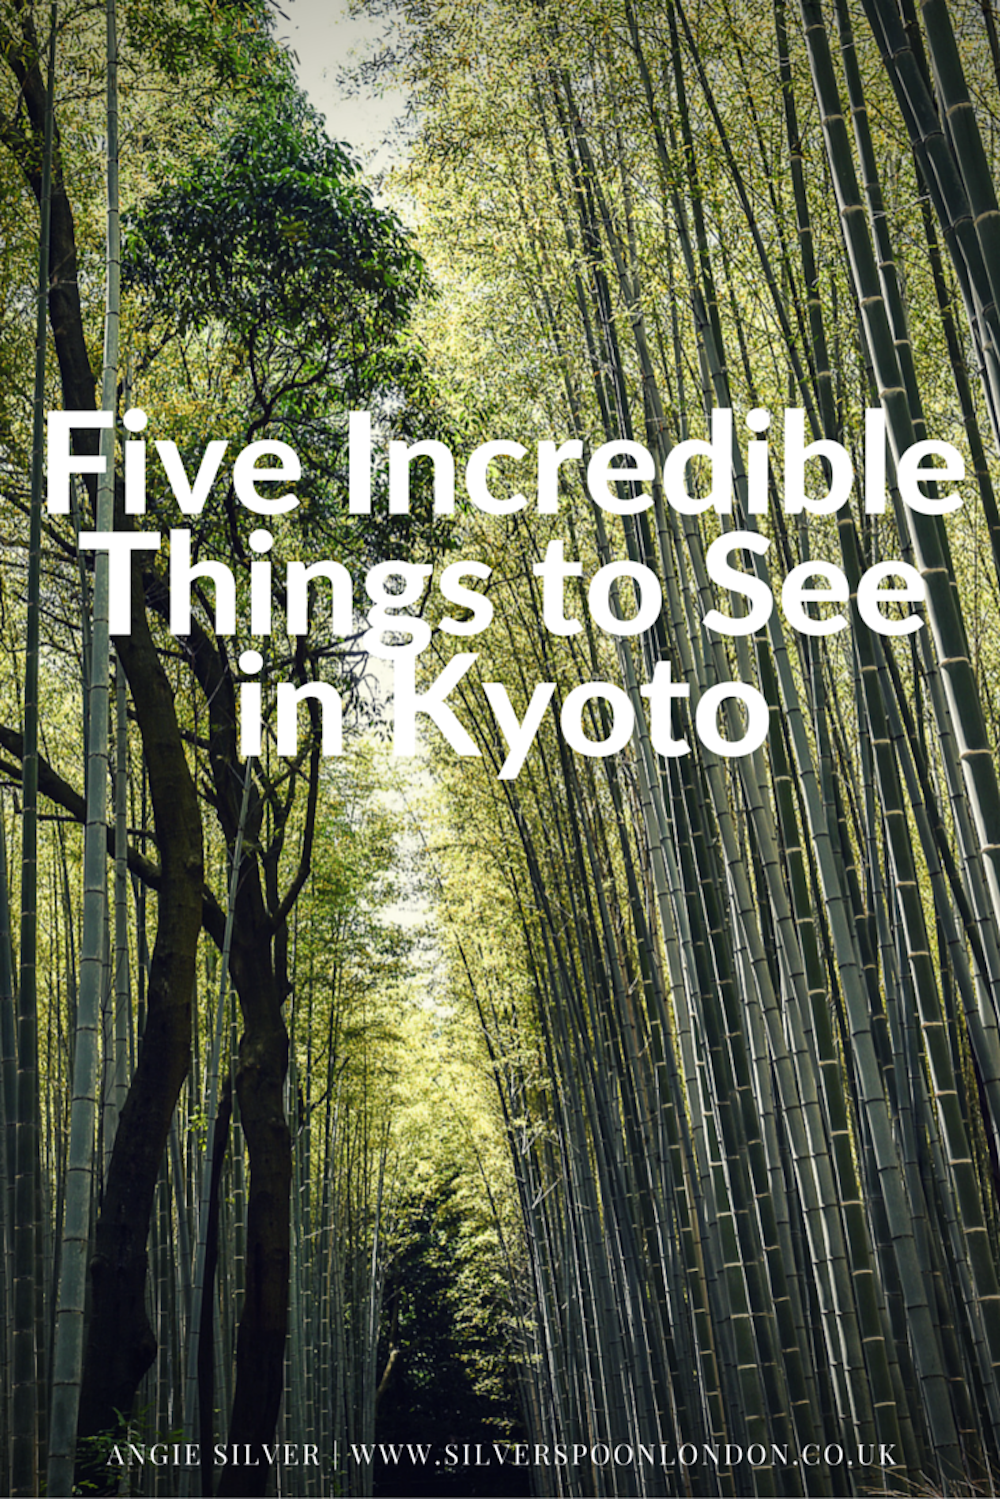 Things to see in Kyoto